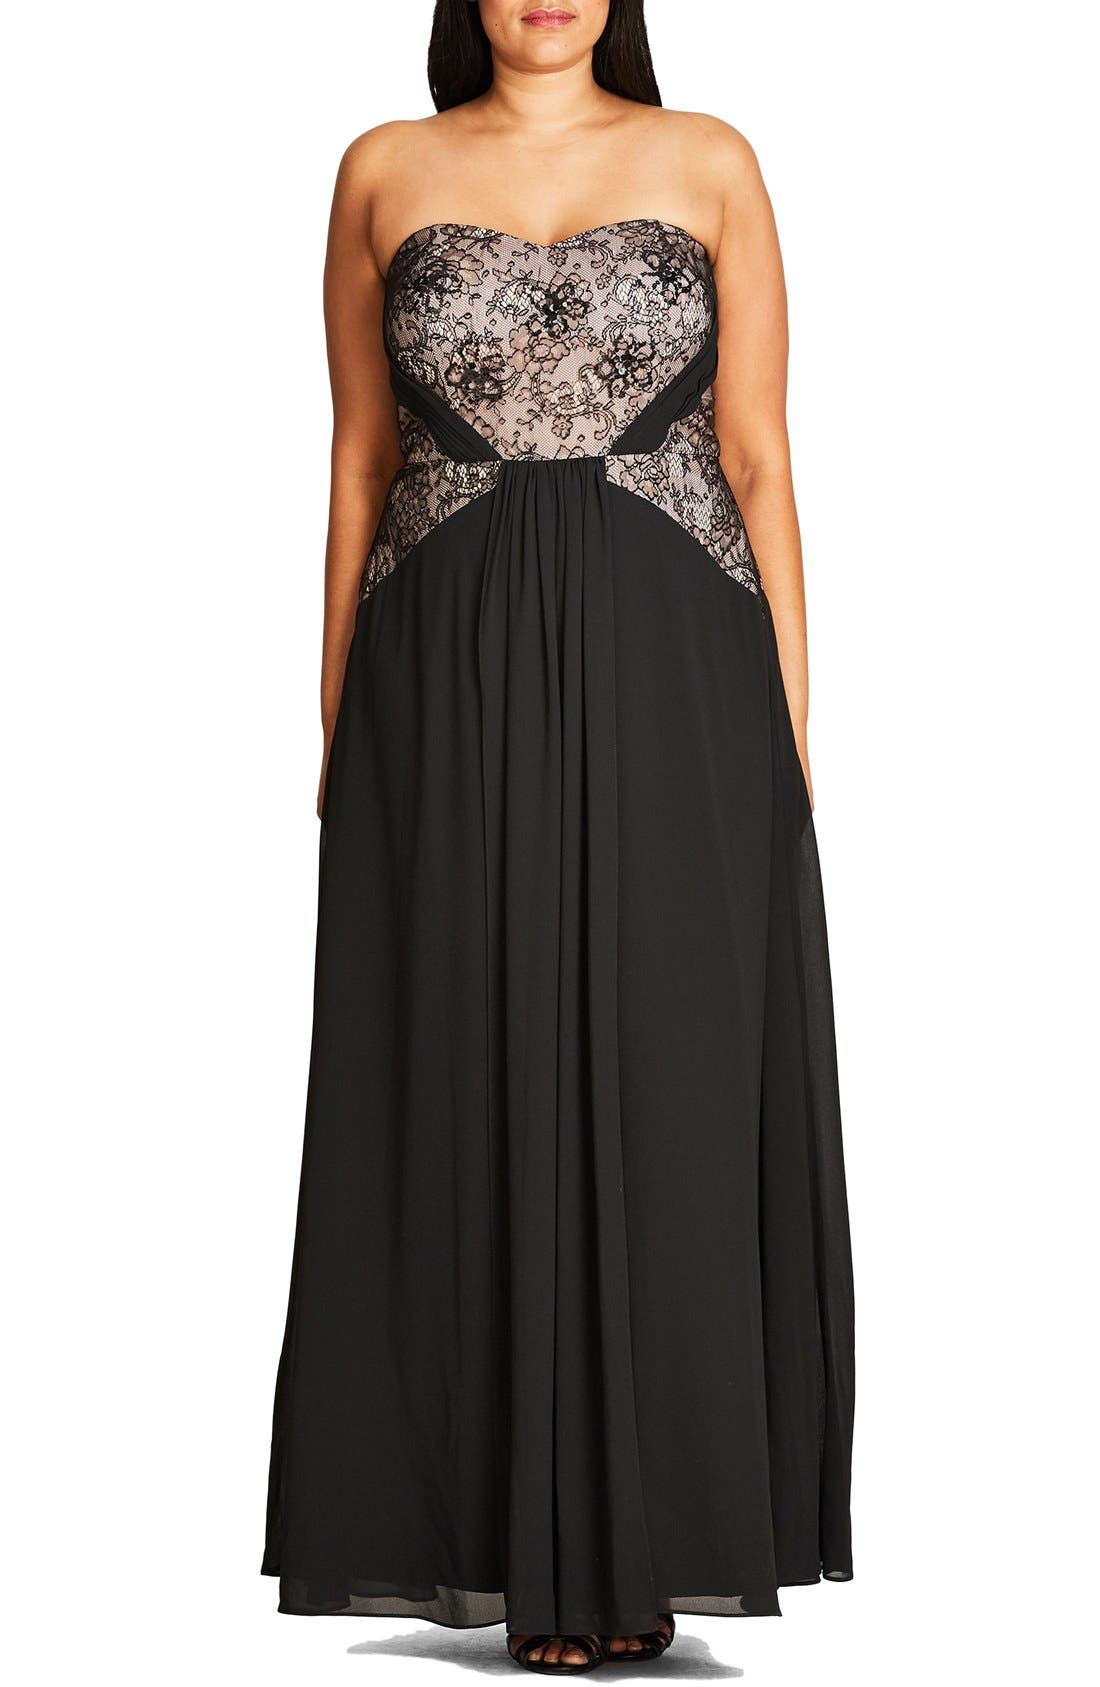 CITY CHIC 'Sofia' Lace Bodice Strapless Gown